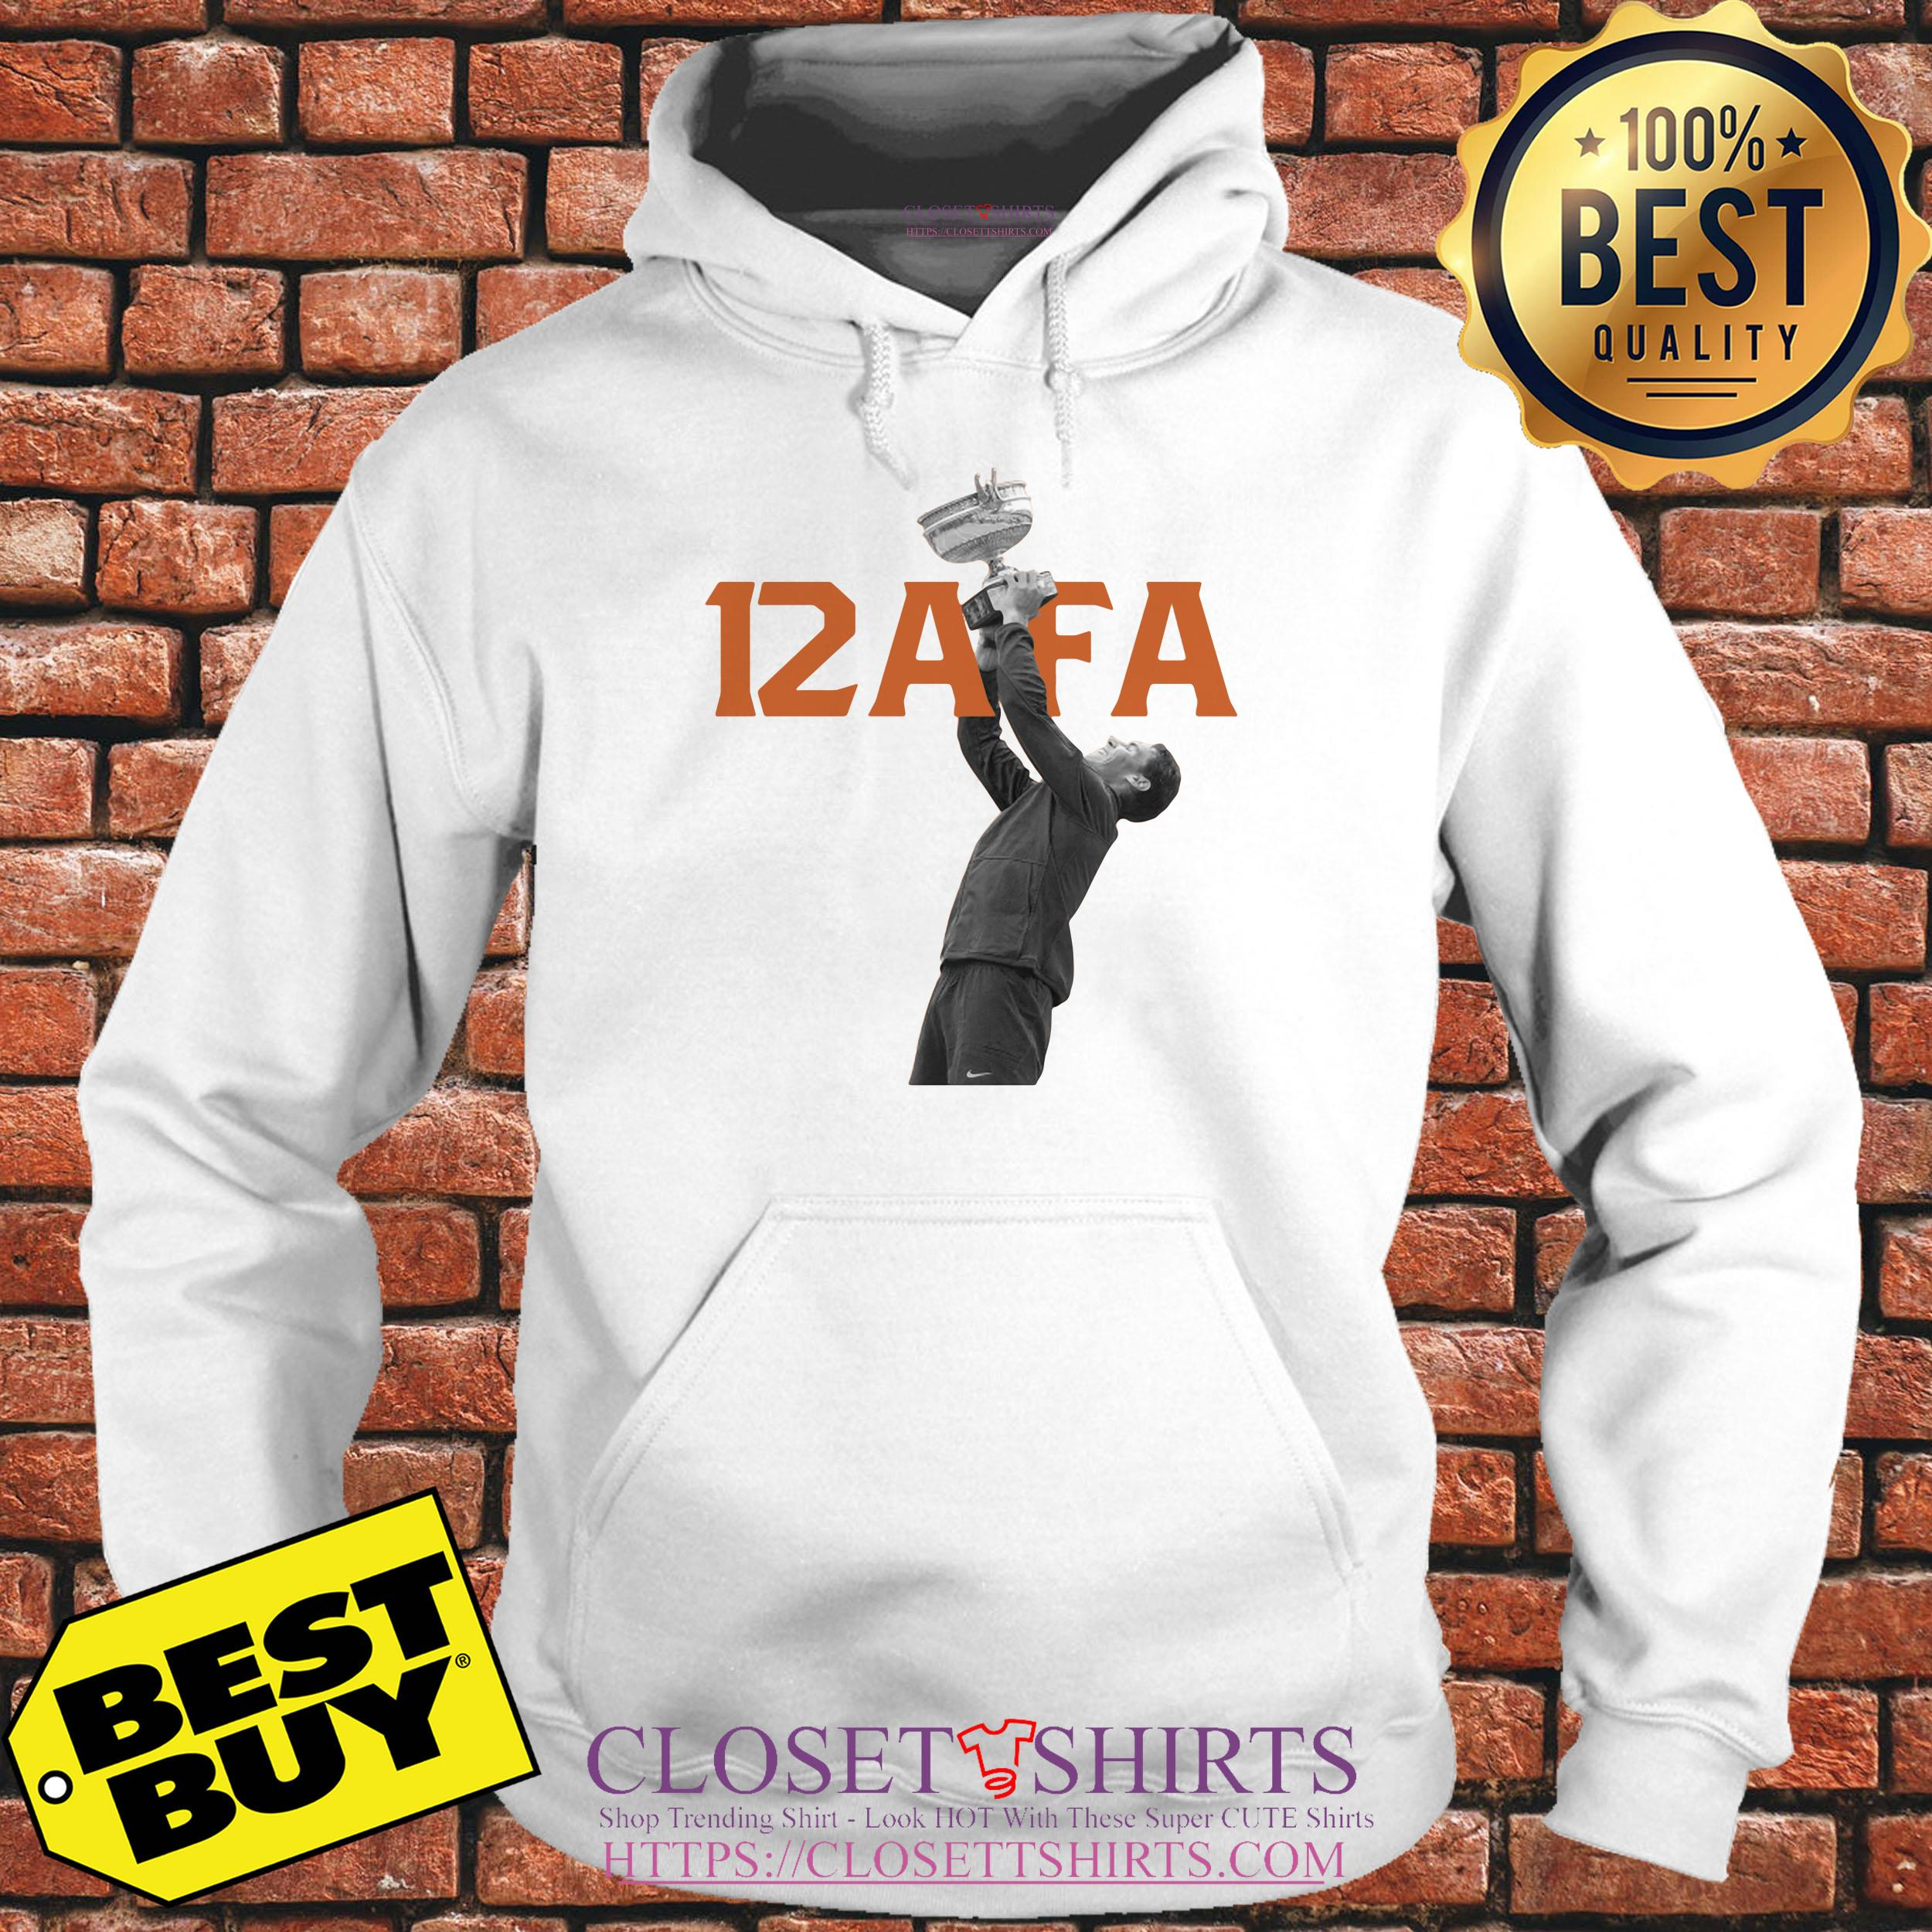 Afa12 Rafael Nadal Wins His 12th French Open Title hoodie